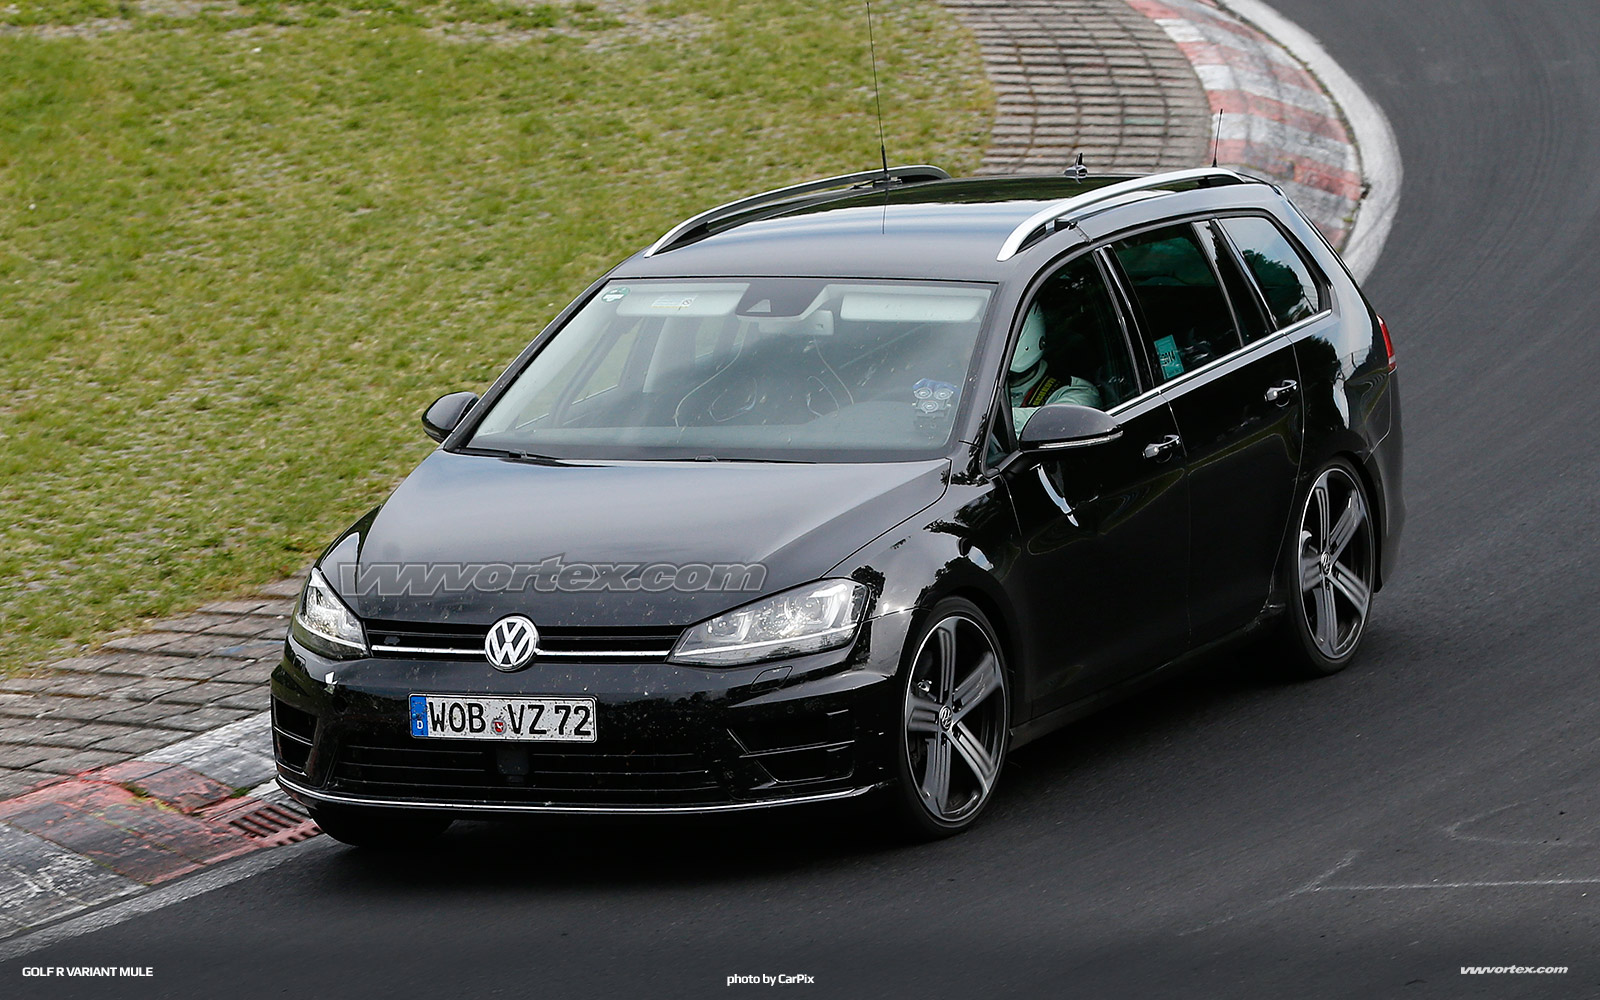 vw-golf-r-variant-mule-379